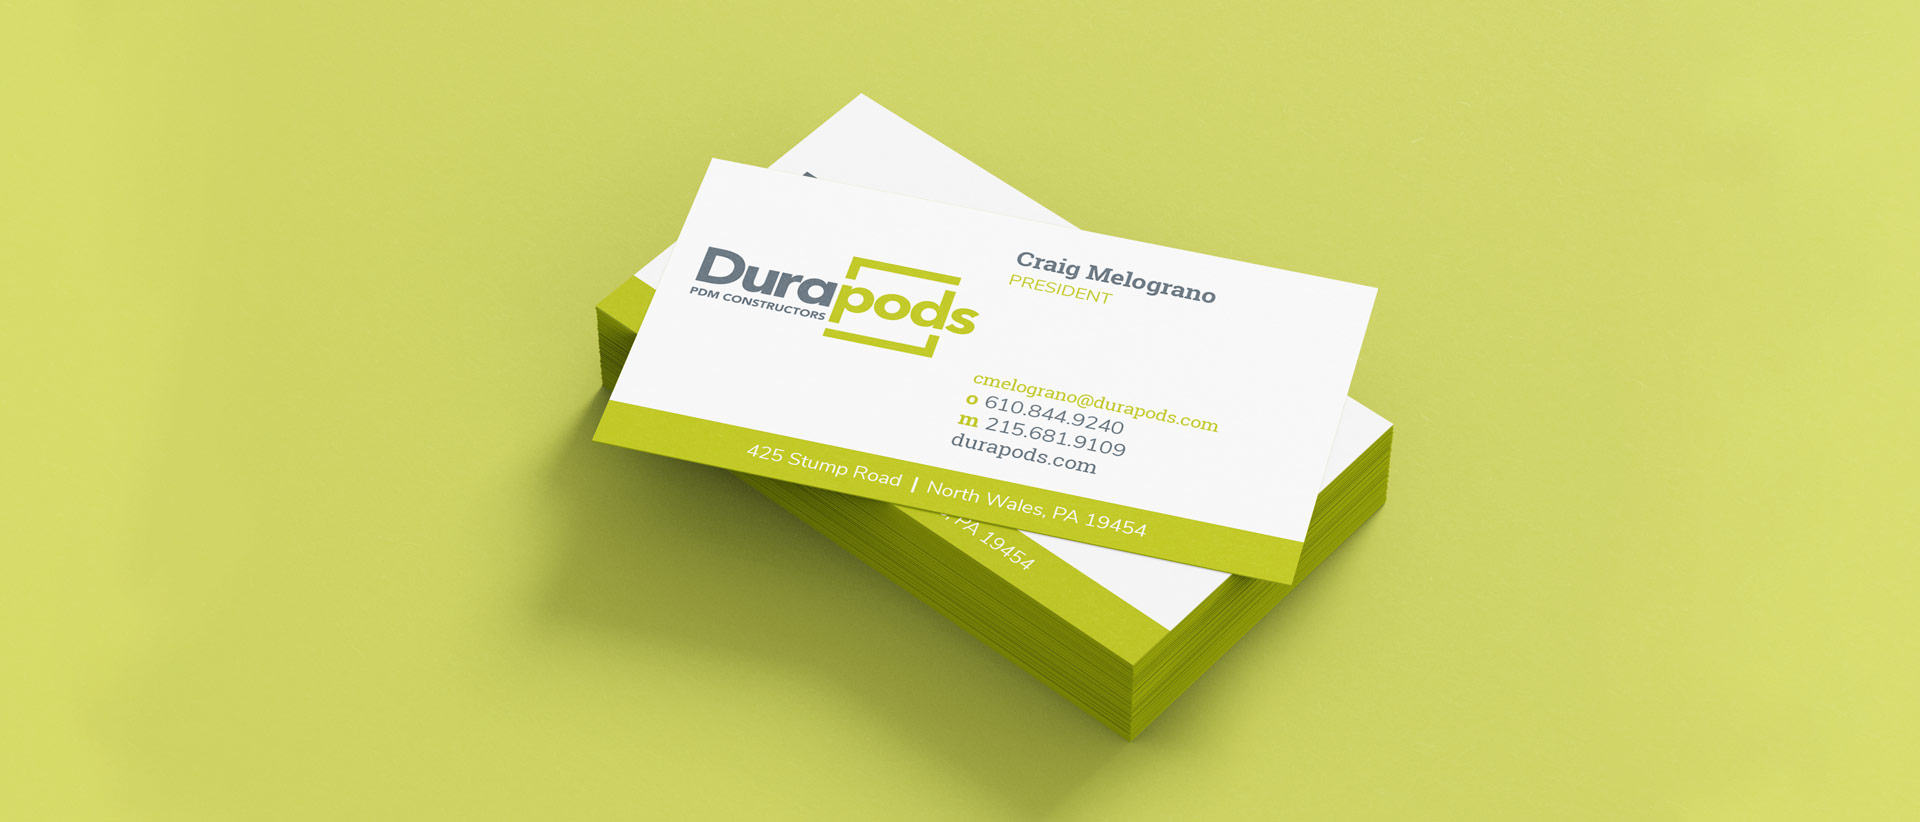 Brand Collateral for Durapods